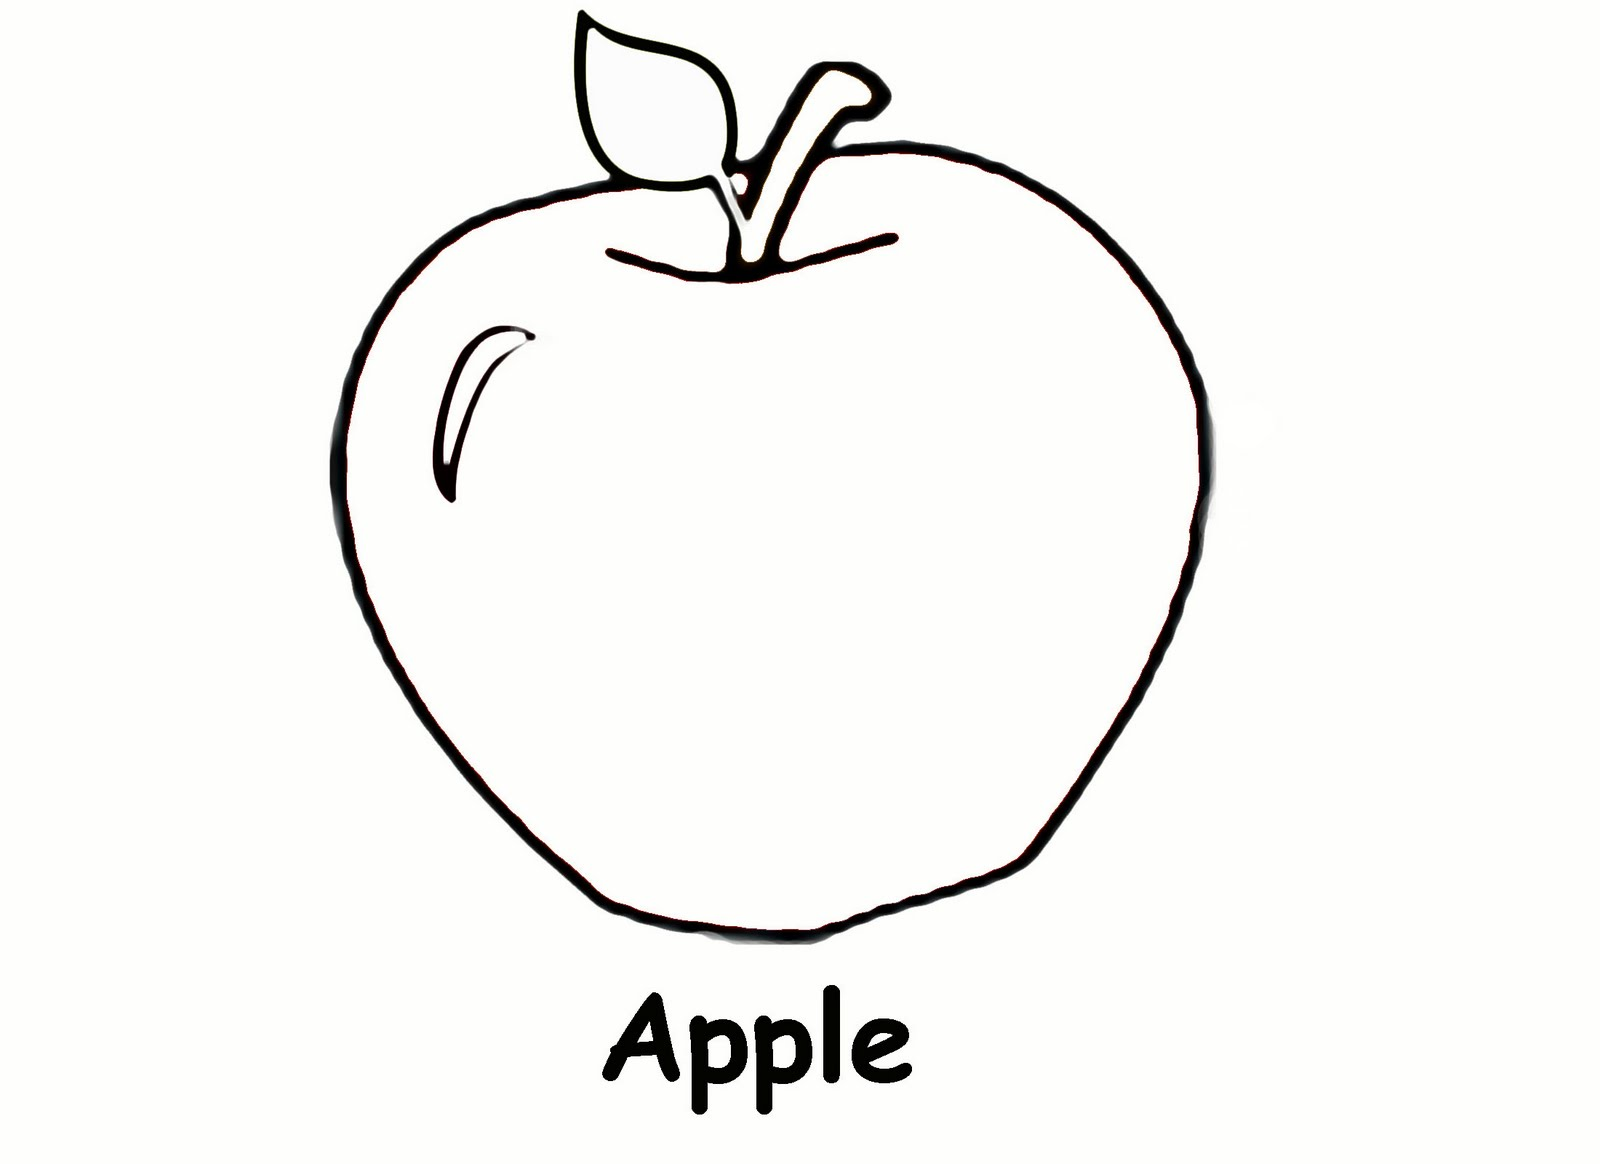 diagram of an apple worksheet 93 chevy 1500 alternator wiring sidther free printable preschool level coloring pages